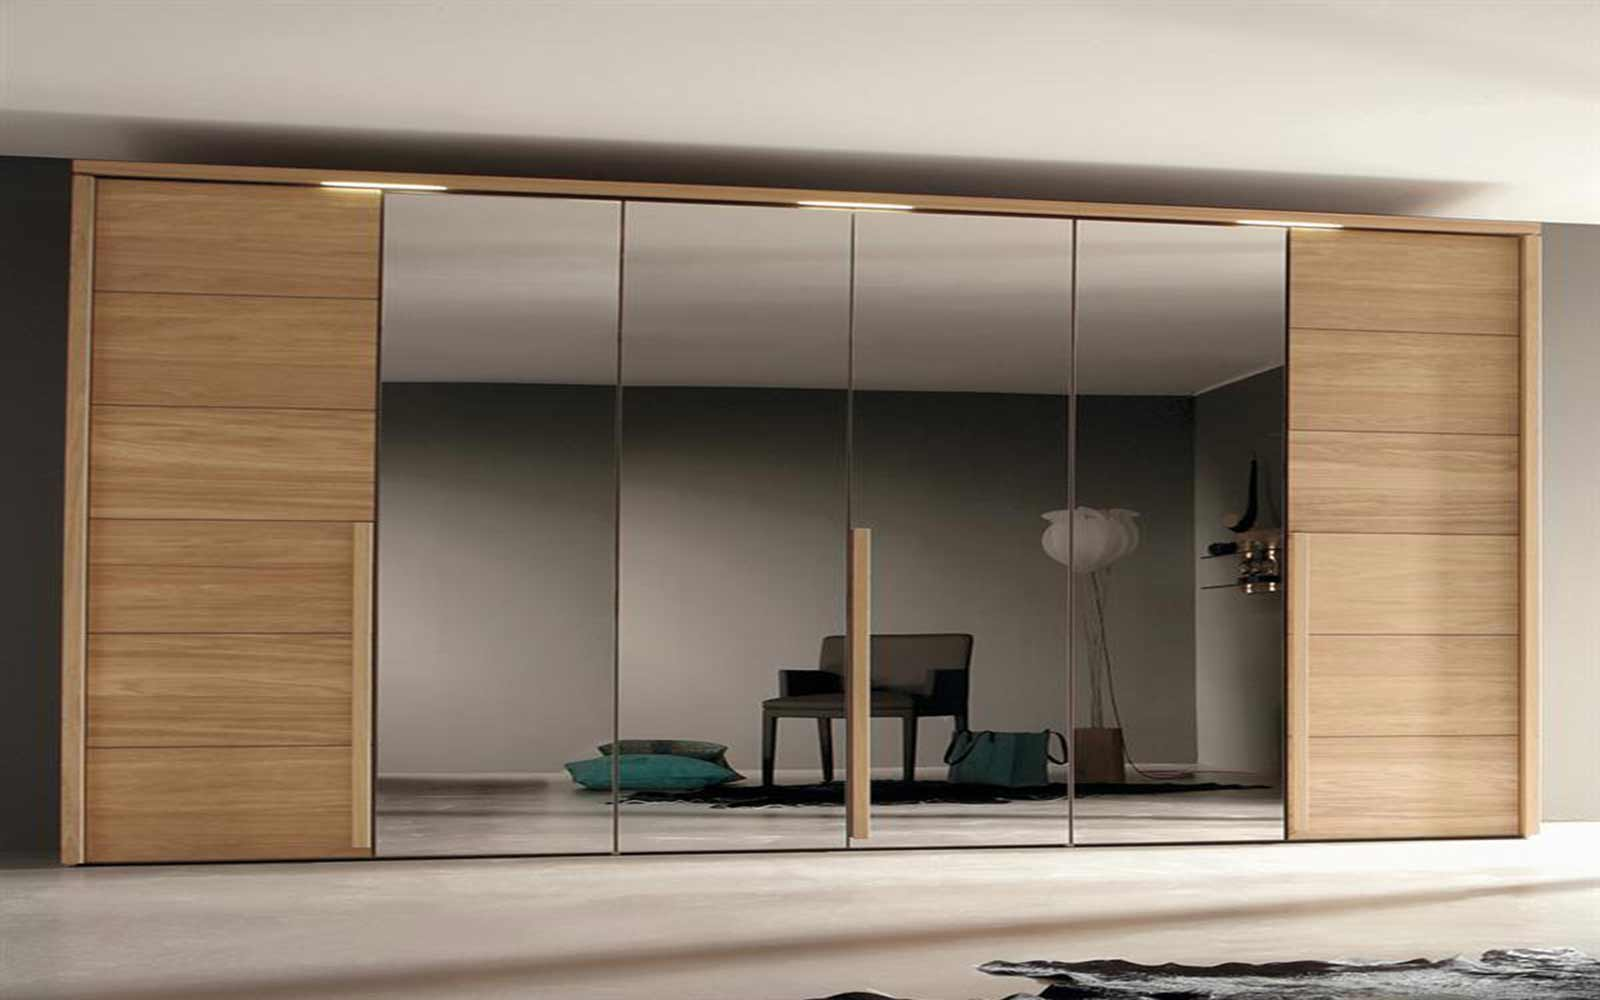 35 images of wardrobe designs for bedrooms youme and trends for Bedroom wardrobe design pictures